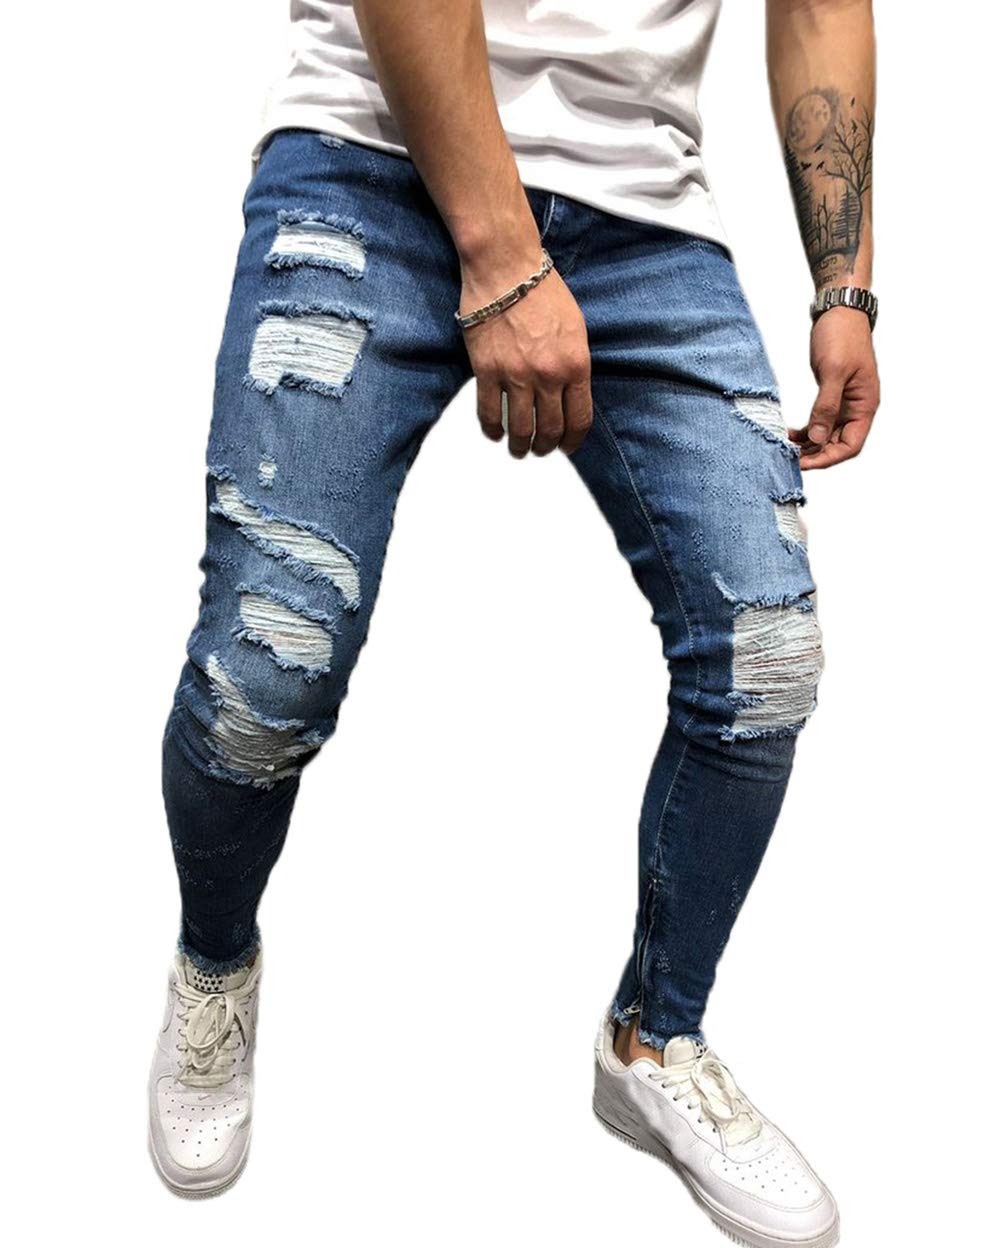 26e314be FUOE Men's Casual Distressed Ripped Destroyed Jeans Slim Fit Skinny Denim  Moto Side Striped Biker Pencil Pants (M, Navy Blue)